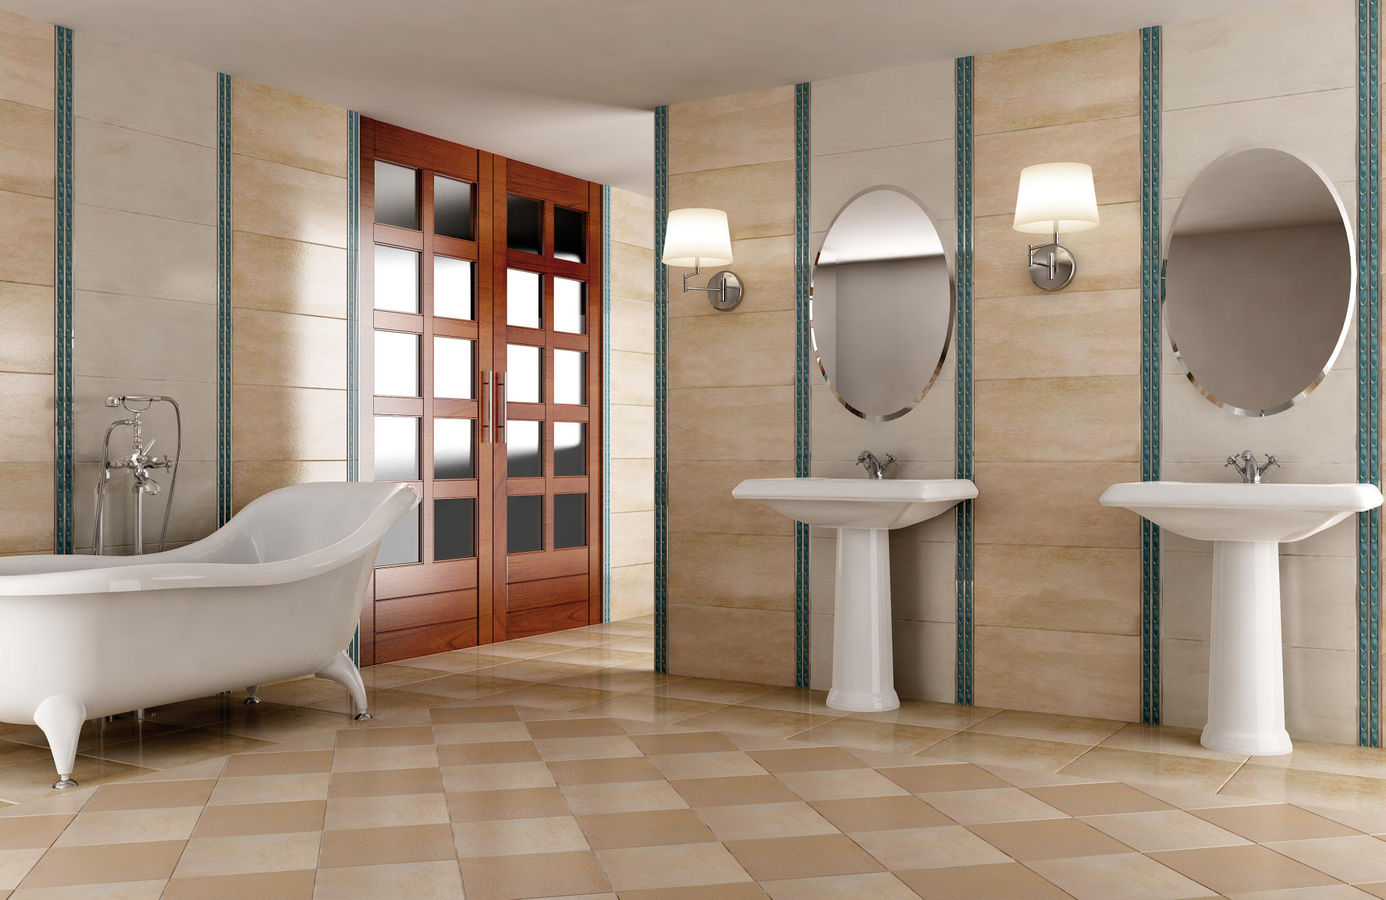 30 great pictures and ideas of decorative ceramic tiles for Bathroom ideas edinburgh